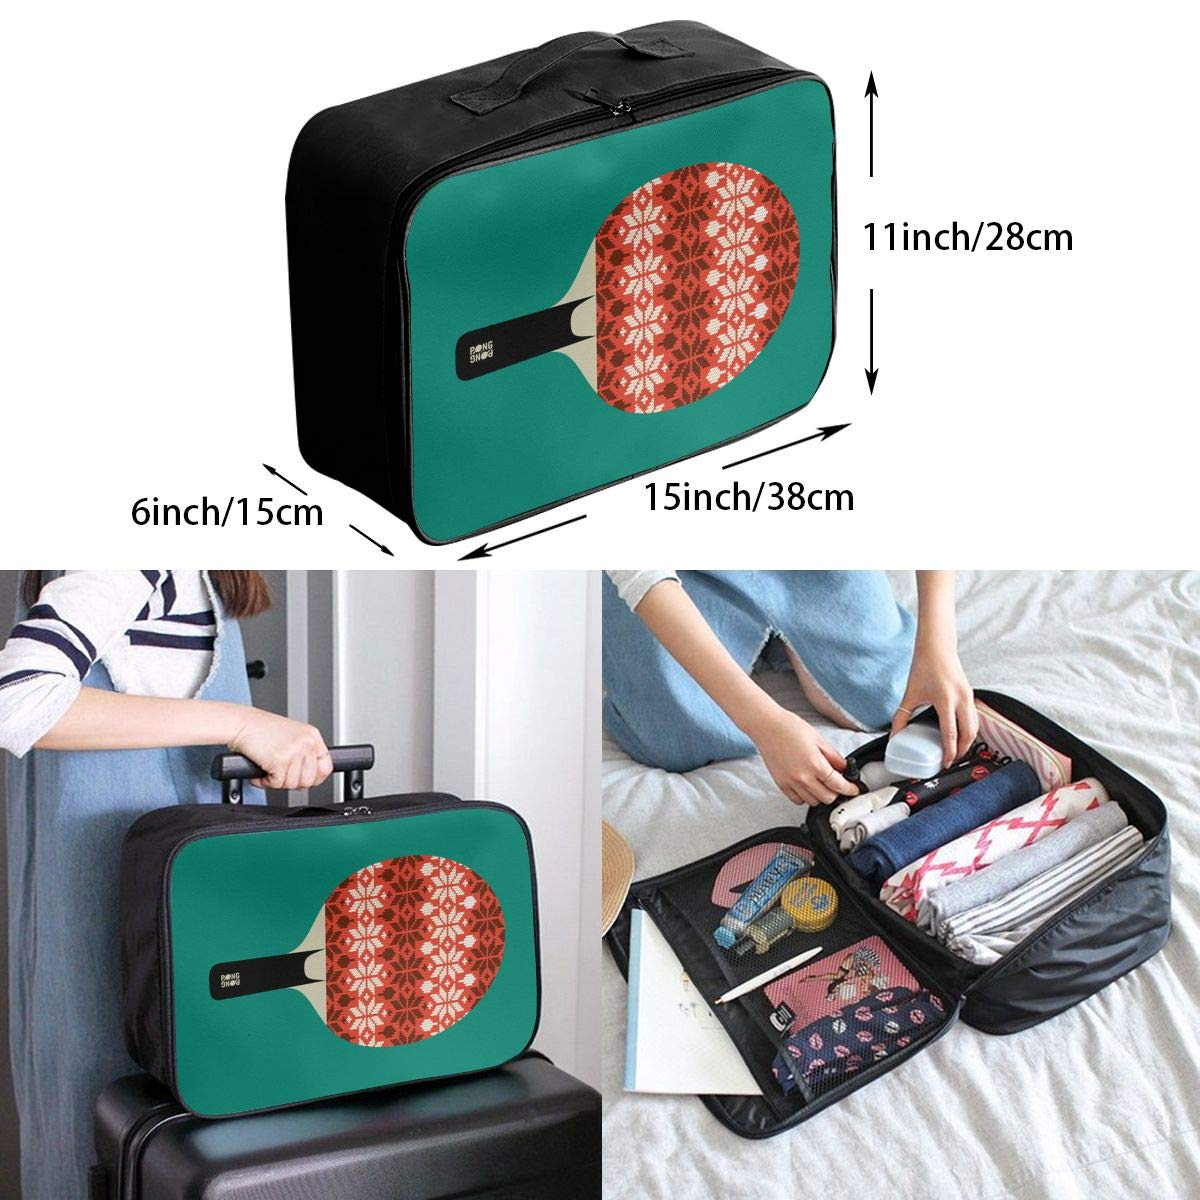 Travel Luggage Duffle Bag Lightweight Portable Handbag Table Tennis Large Capacity Waterproof Foldable Storage Tote